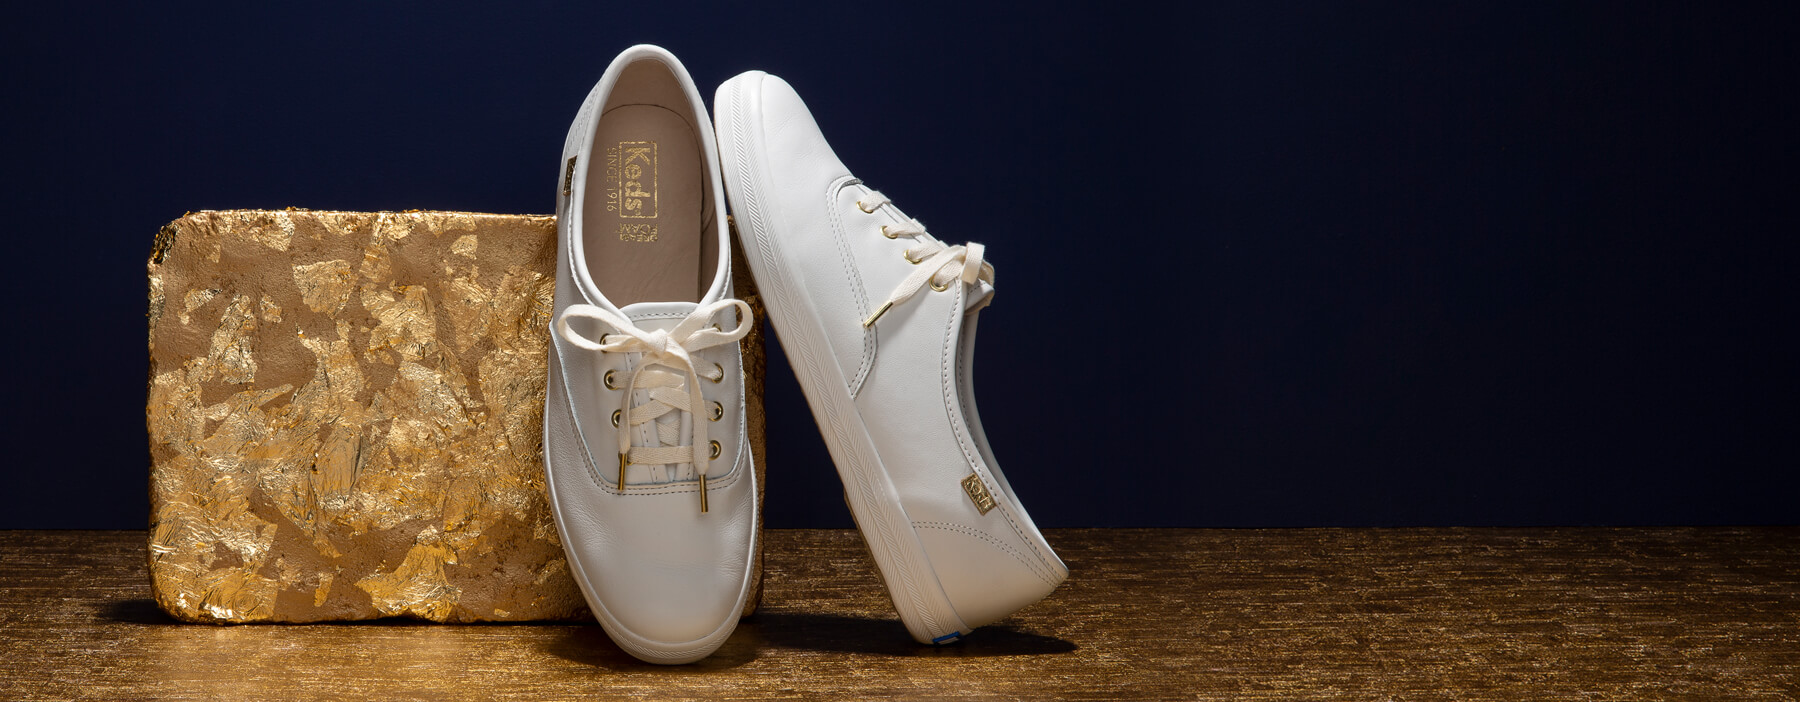 White, leather shoes with gold eyelets and shoelace tips.